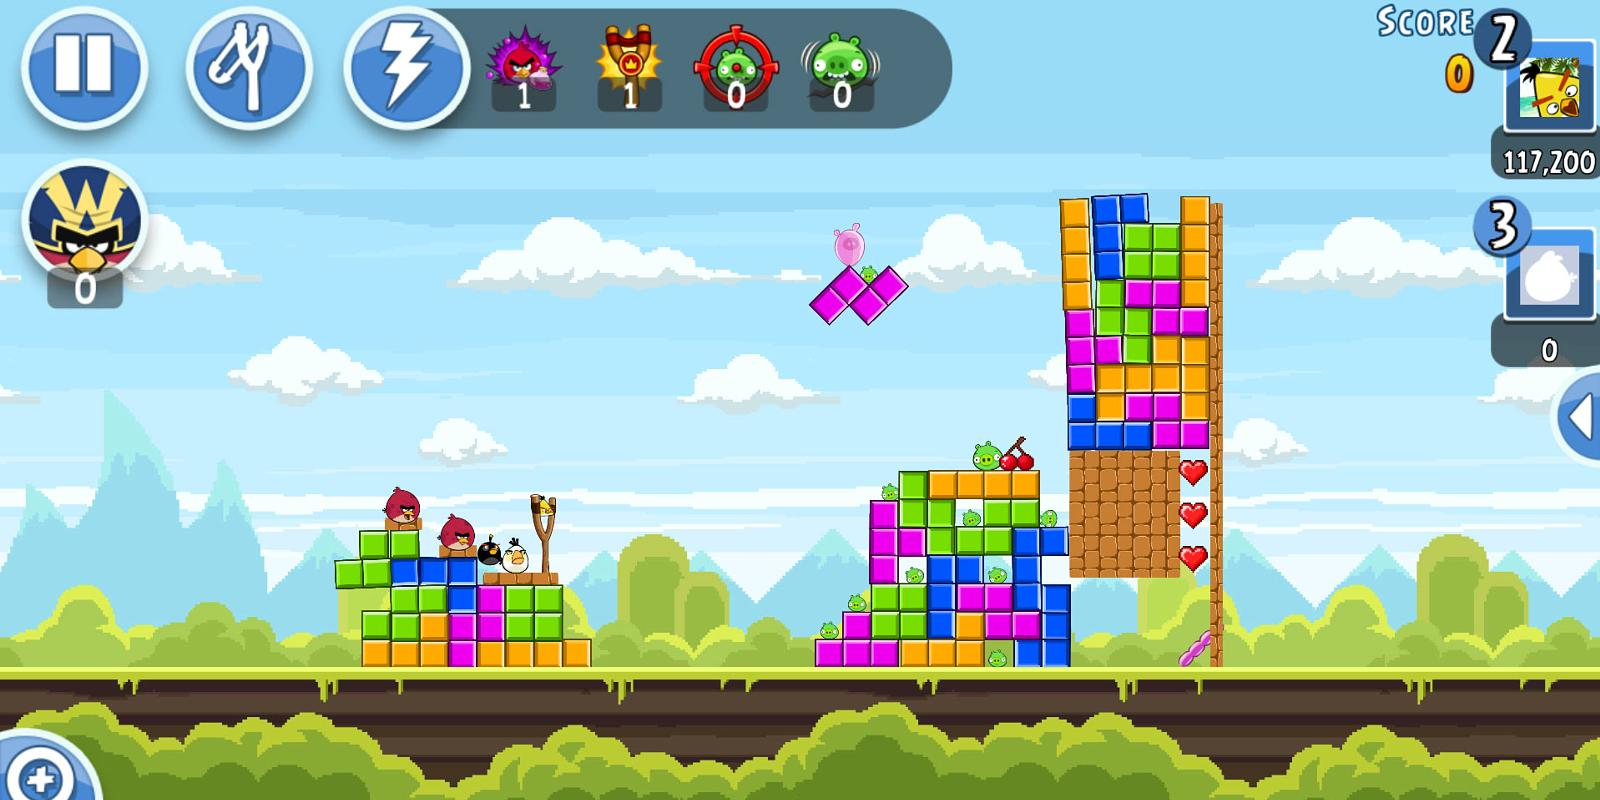 Angry birds 2 review 5 reasons why fans should flock to the sequel angry birds retro inspired levels voltagebd Gallery